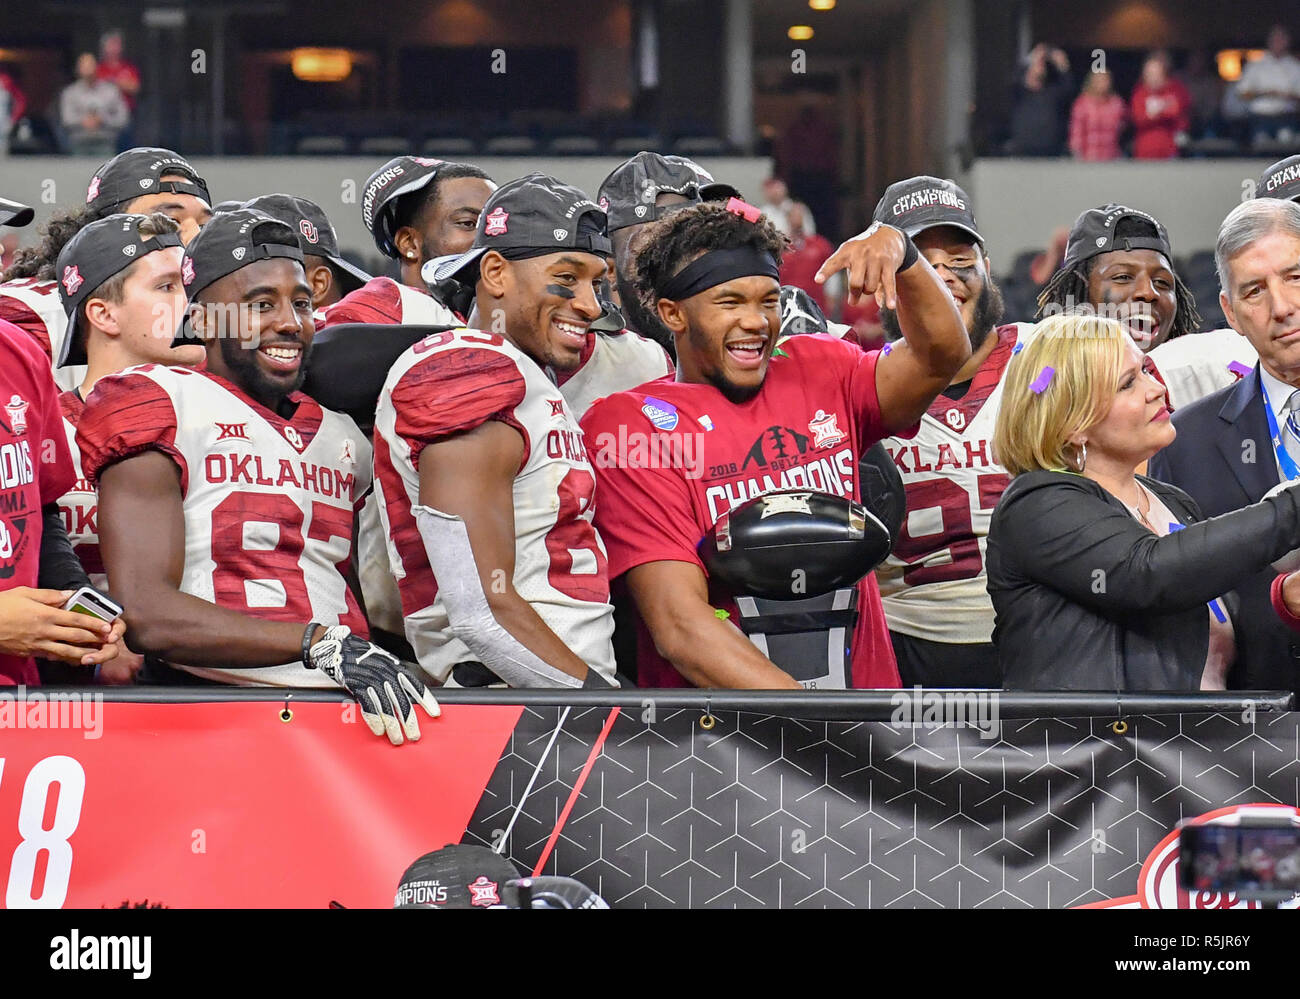 reputable site c79c3 530b6 December 01, 2018: Oklahoma Sooners quarterback Kyler Murray ...